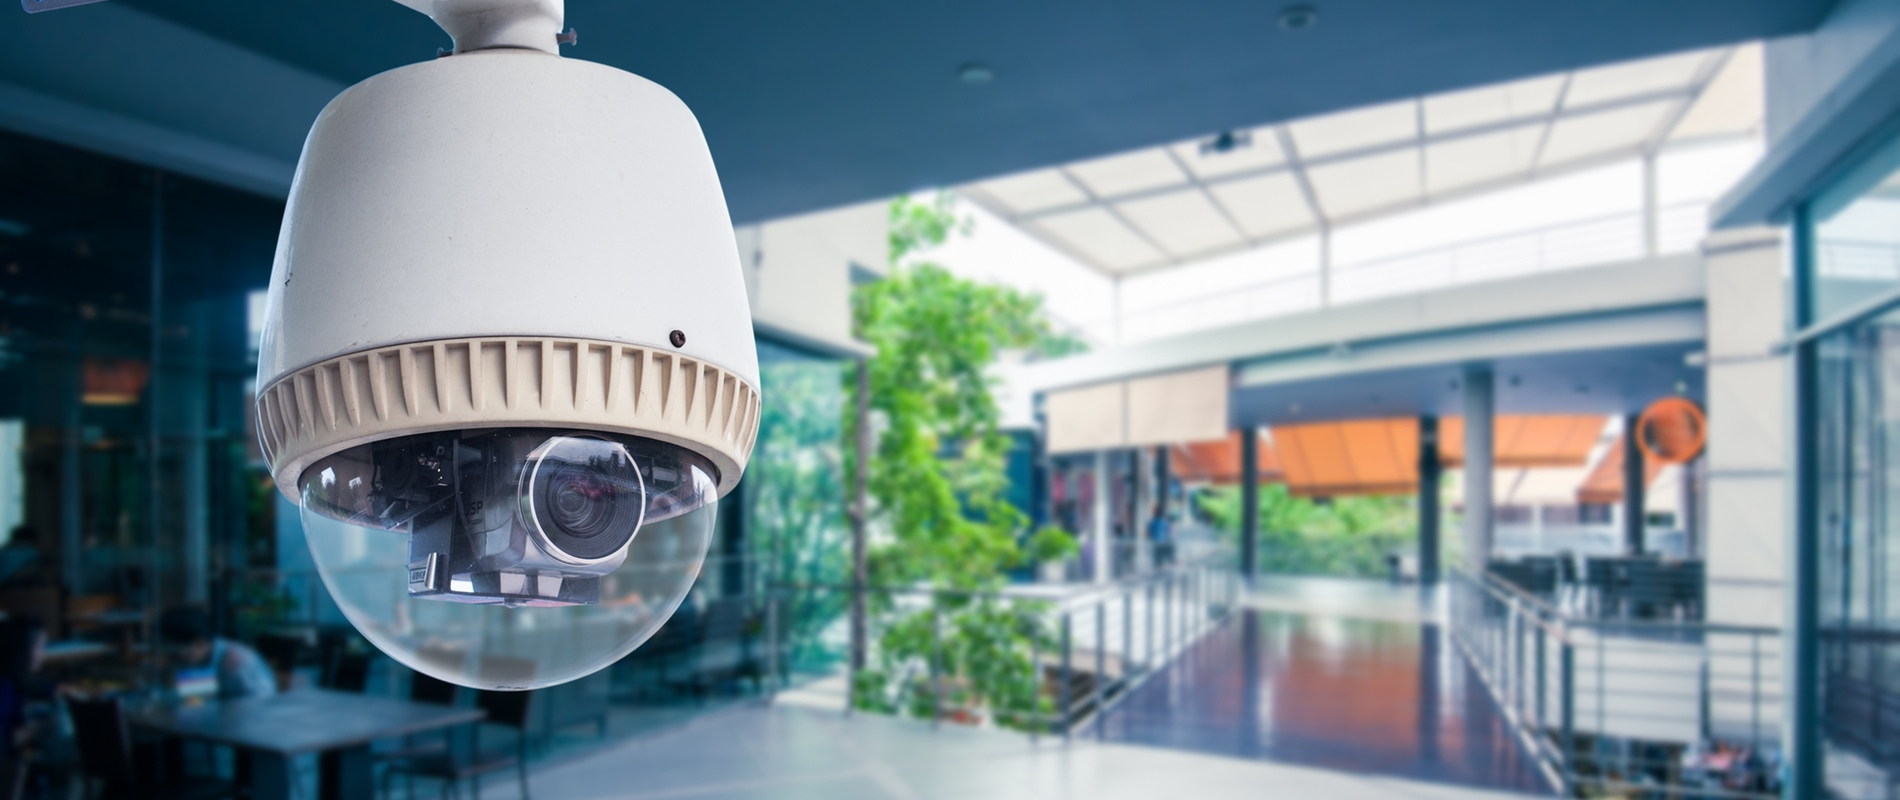 Security Systems Will Keep Your Business Secure